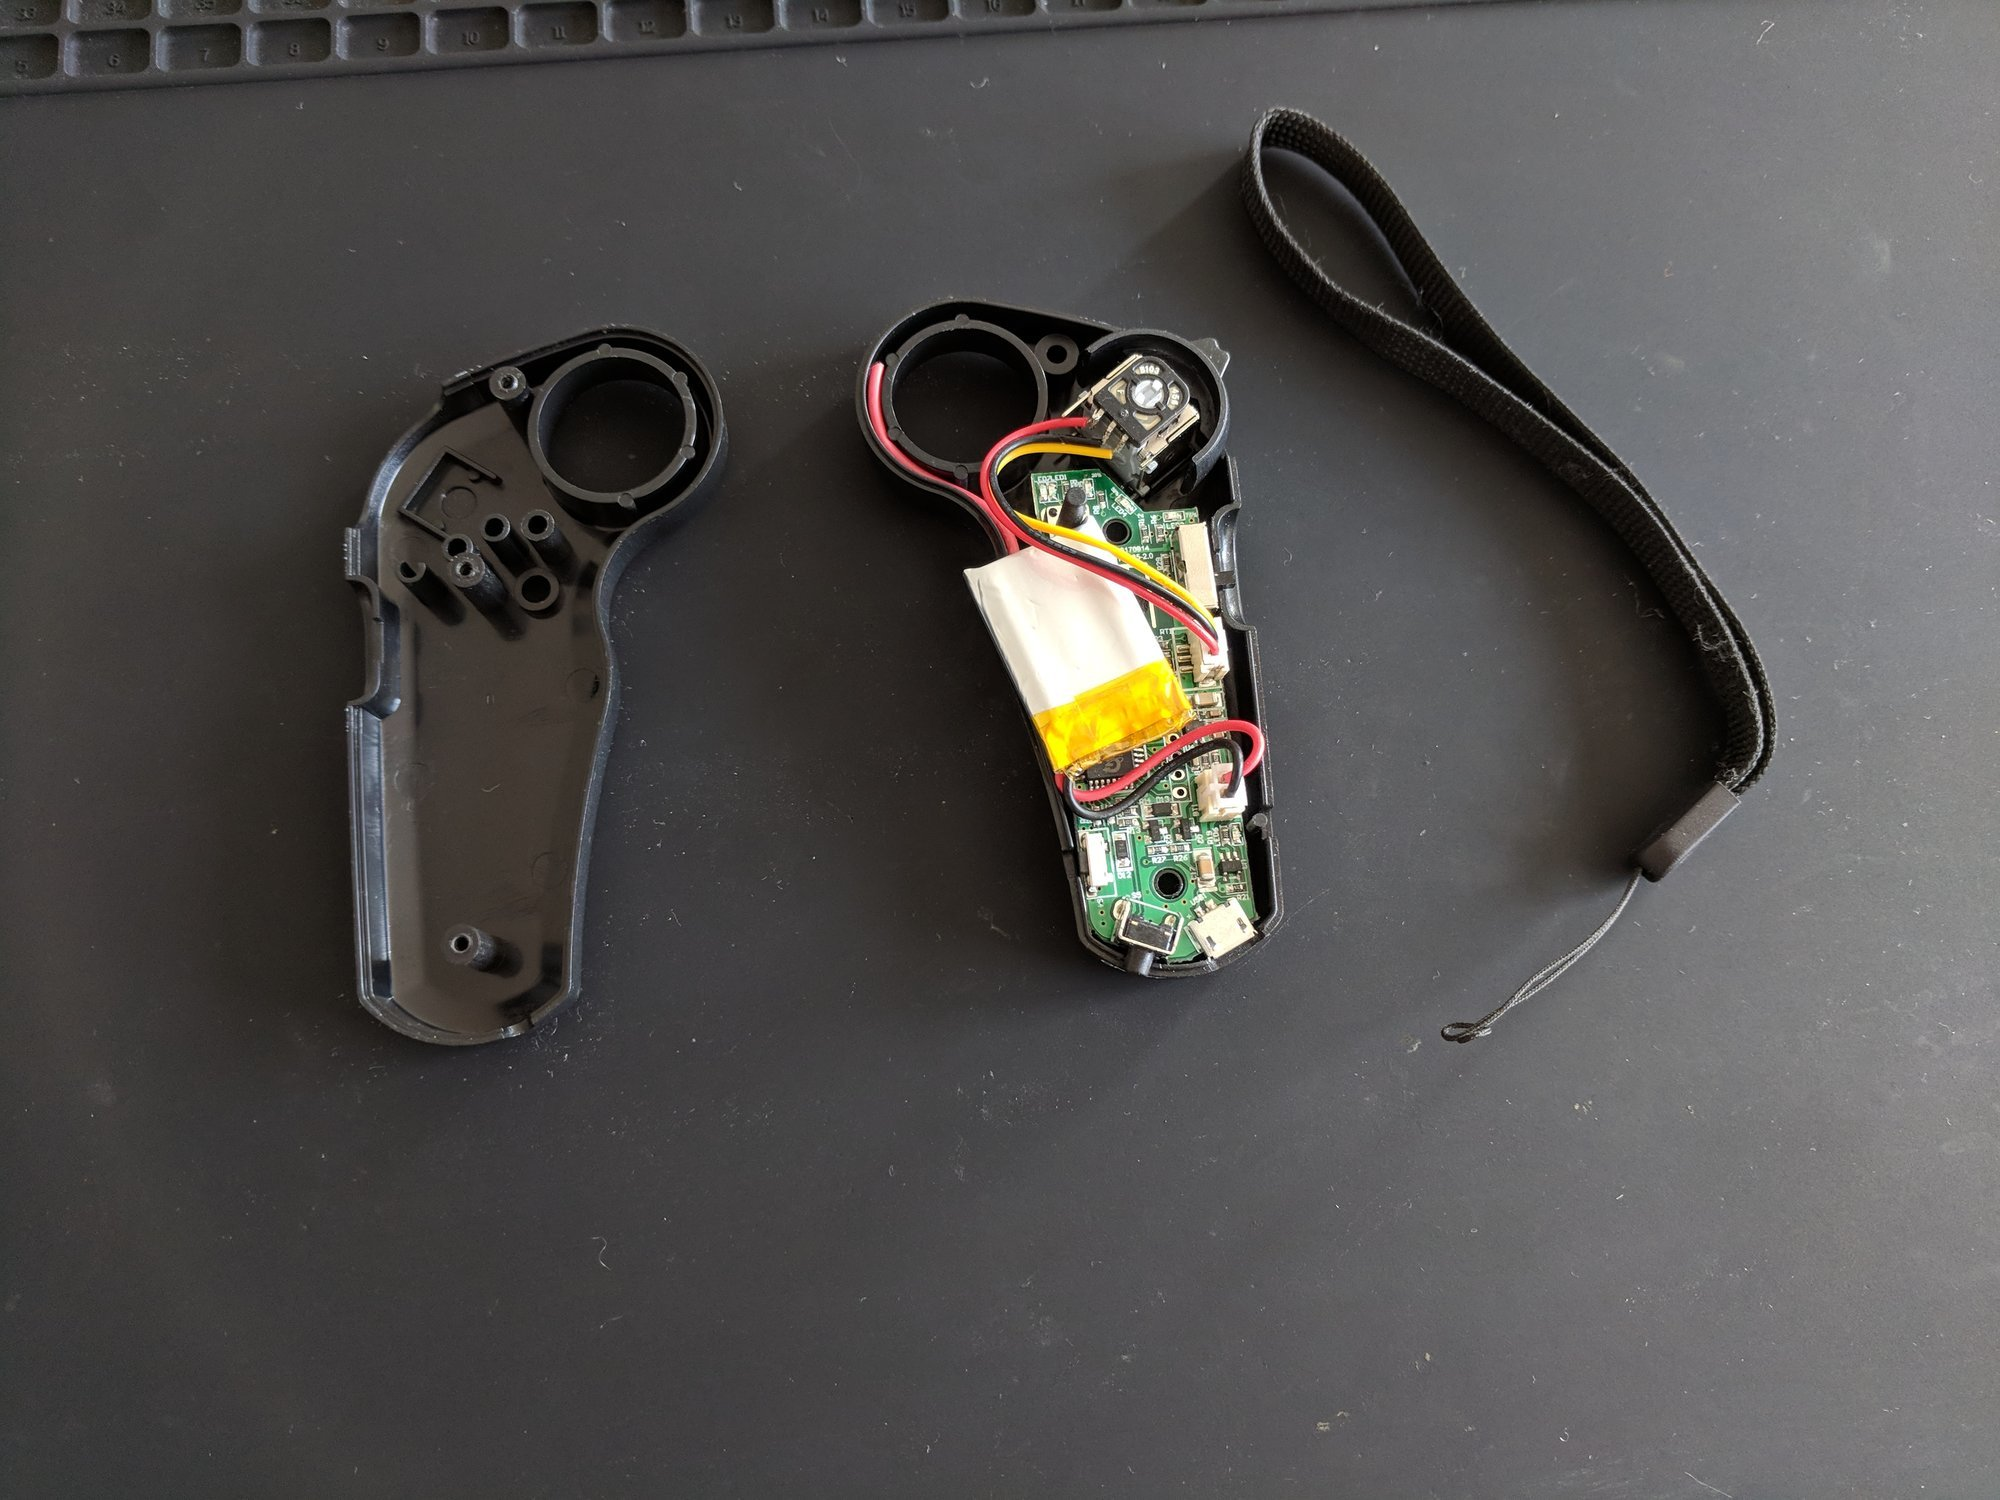 The disassembled remote control